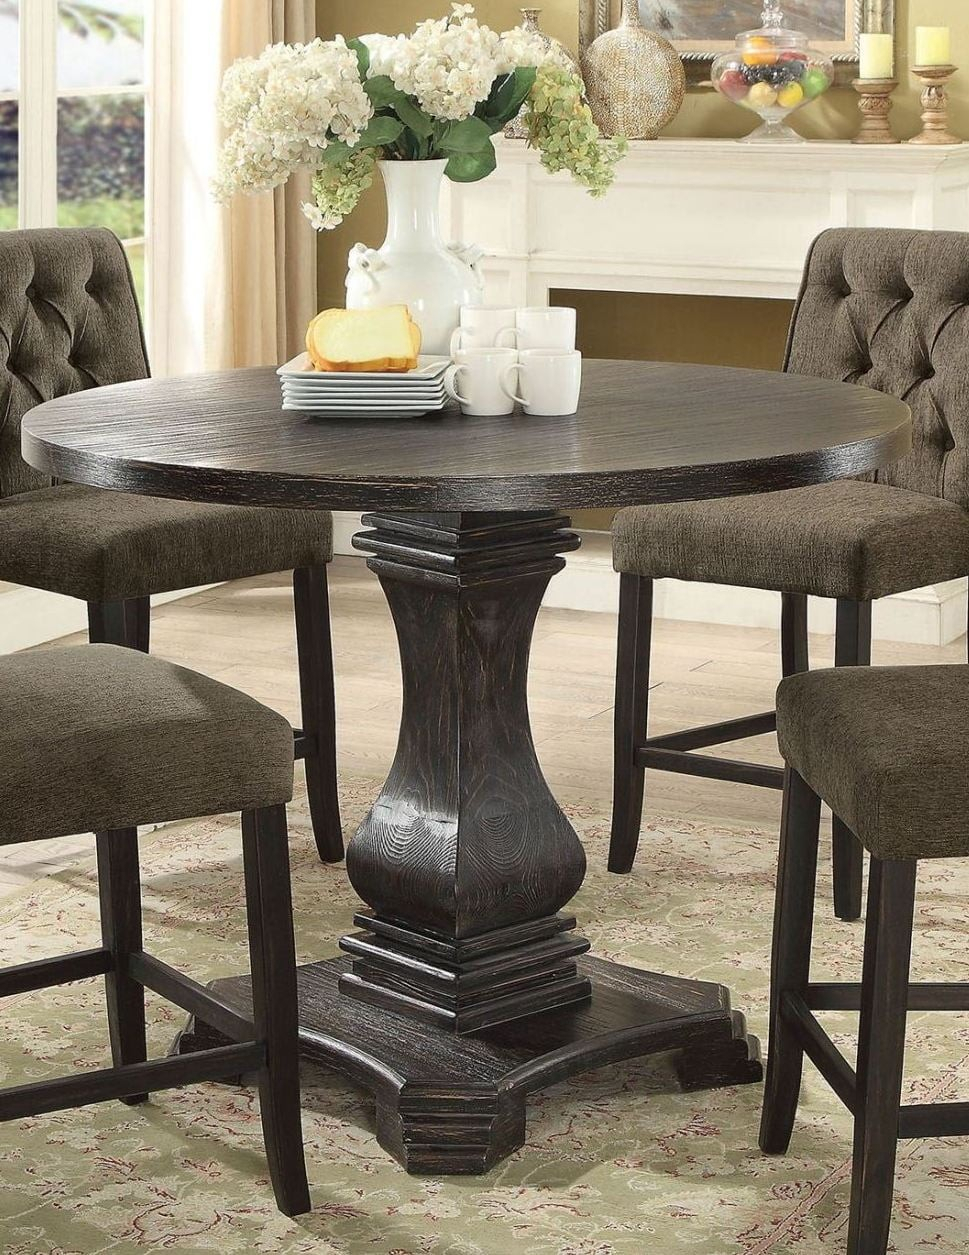 Nerissa Antique Black Counter Height Dining Table Within Most Current Counter Height Dining Tables (View 2 of 15)